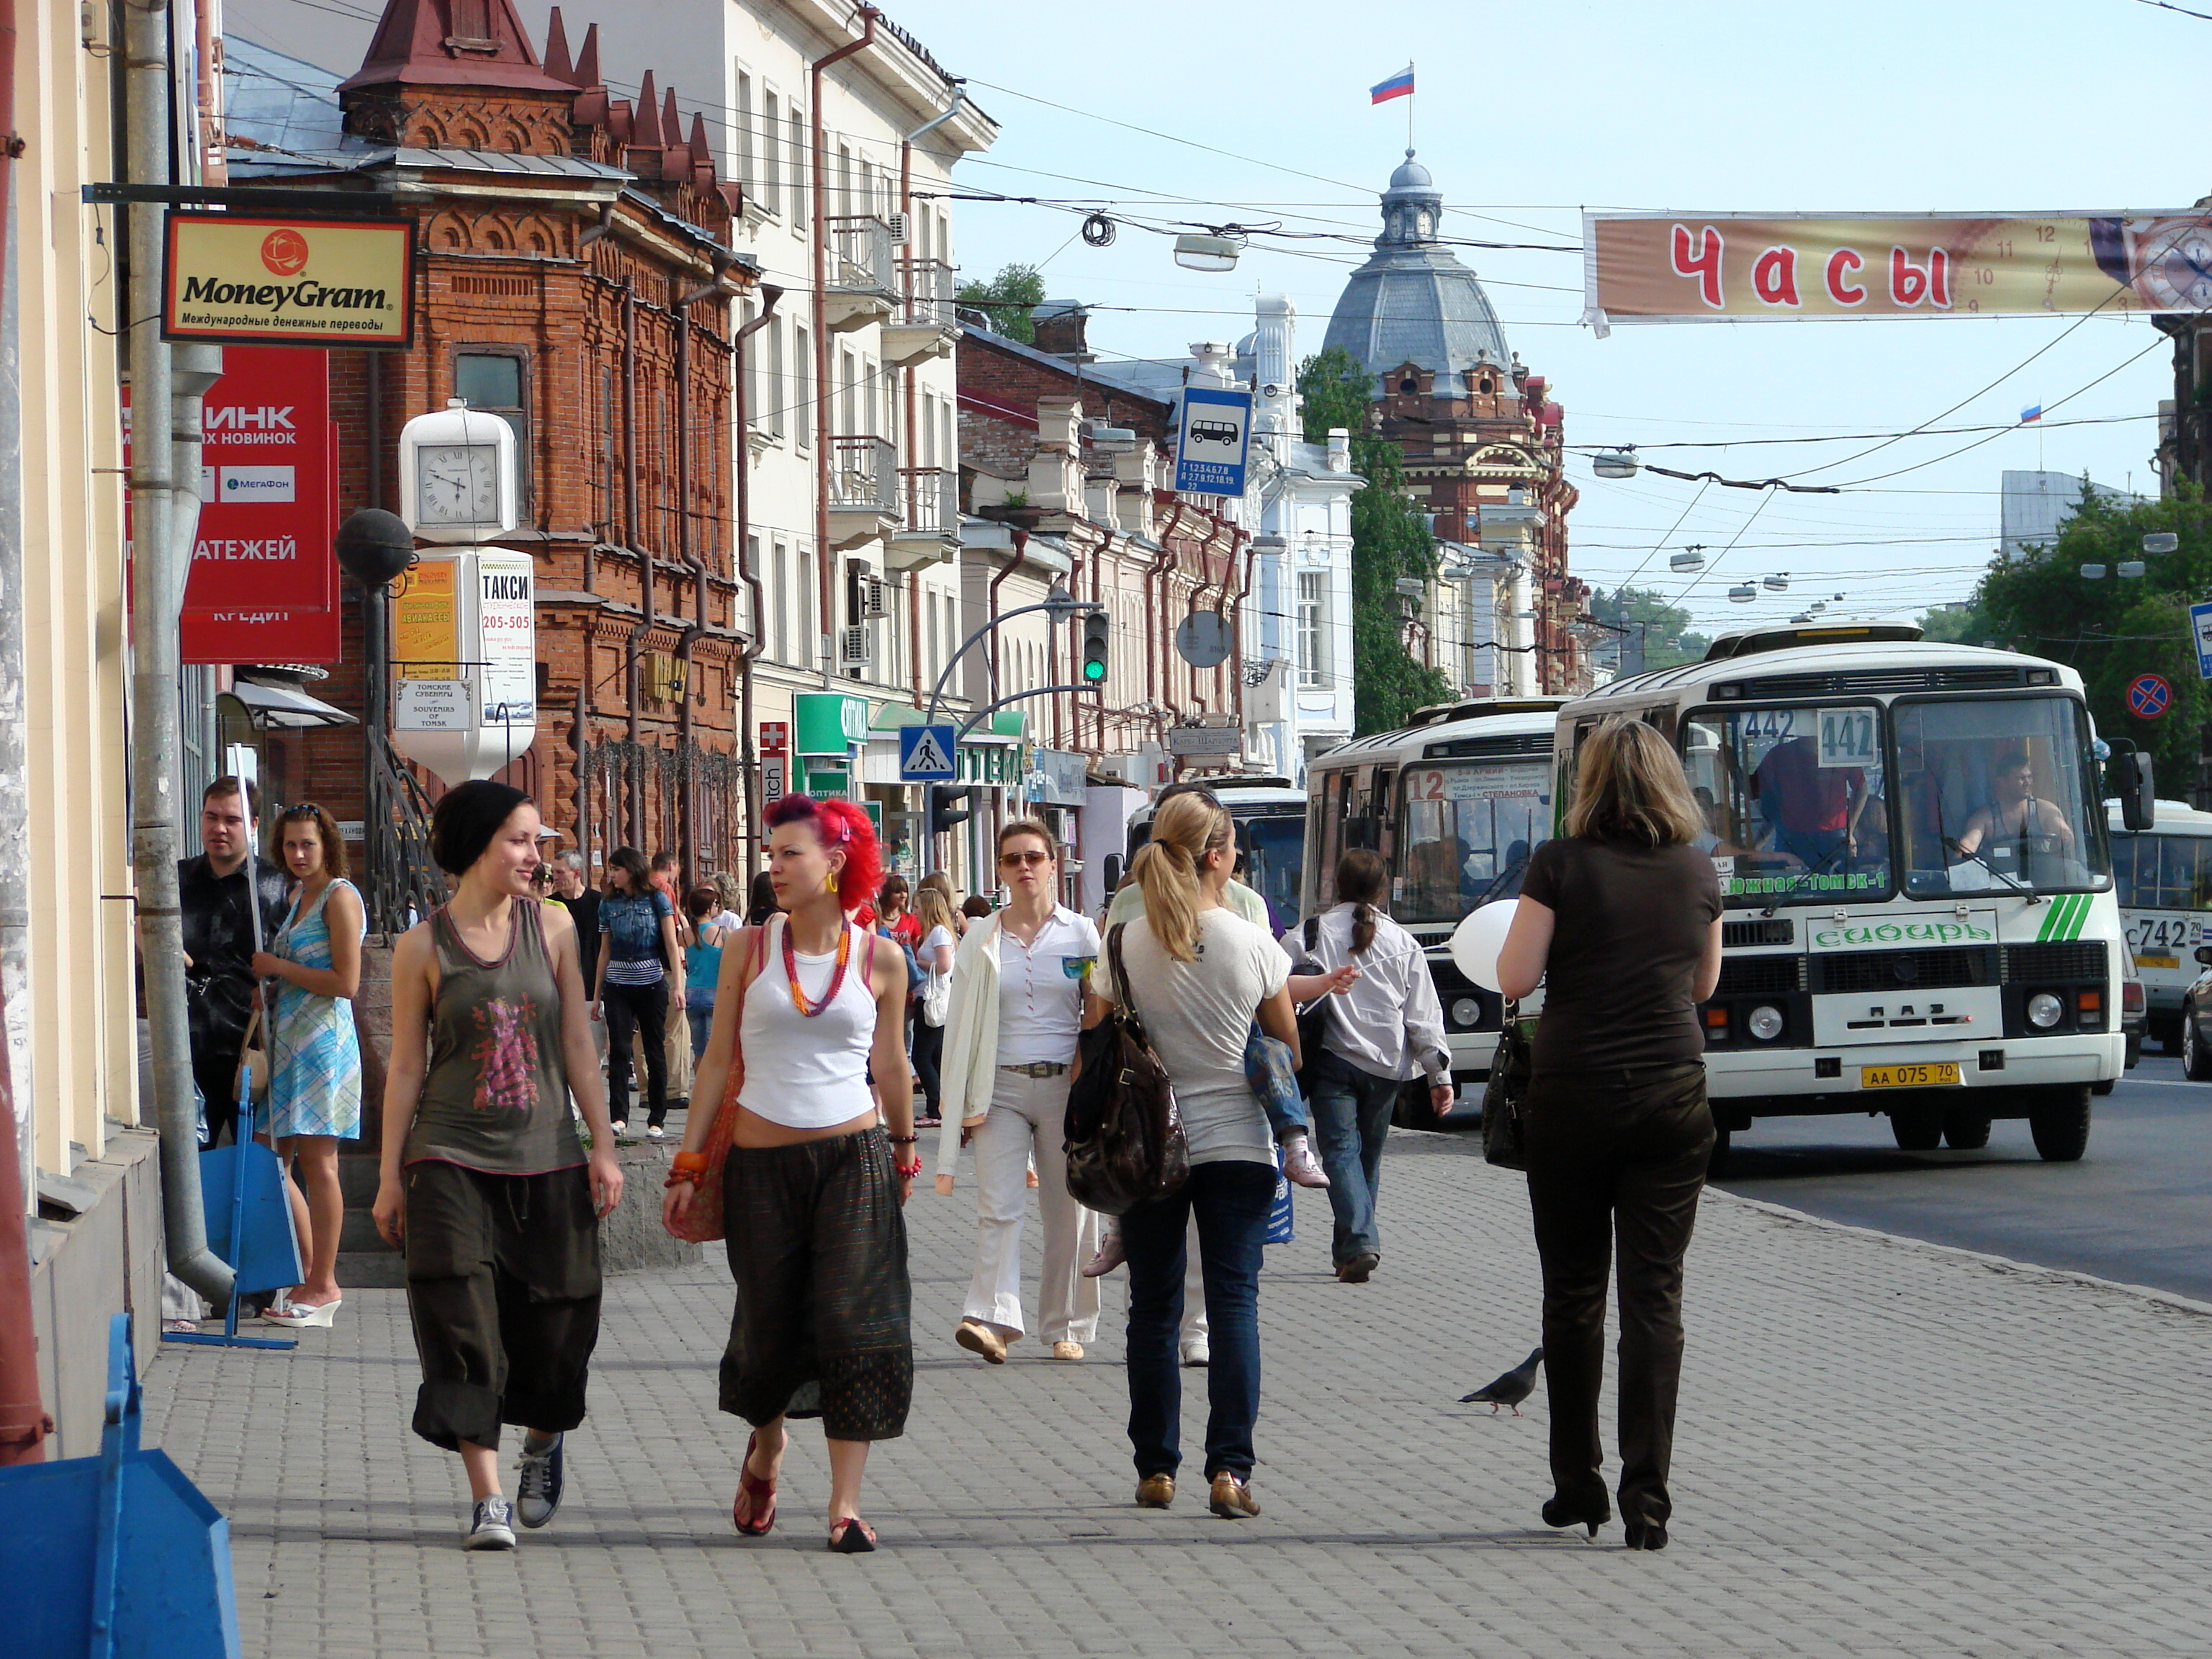 Description street scene in tomsk russia jpg